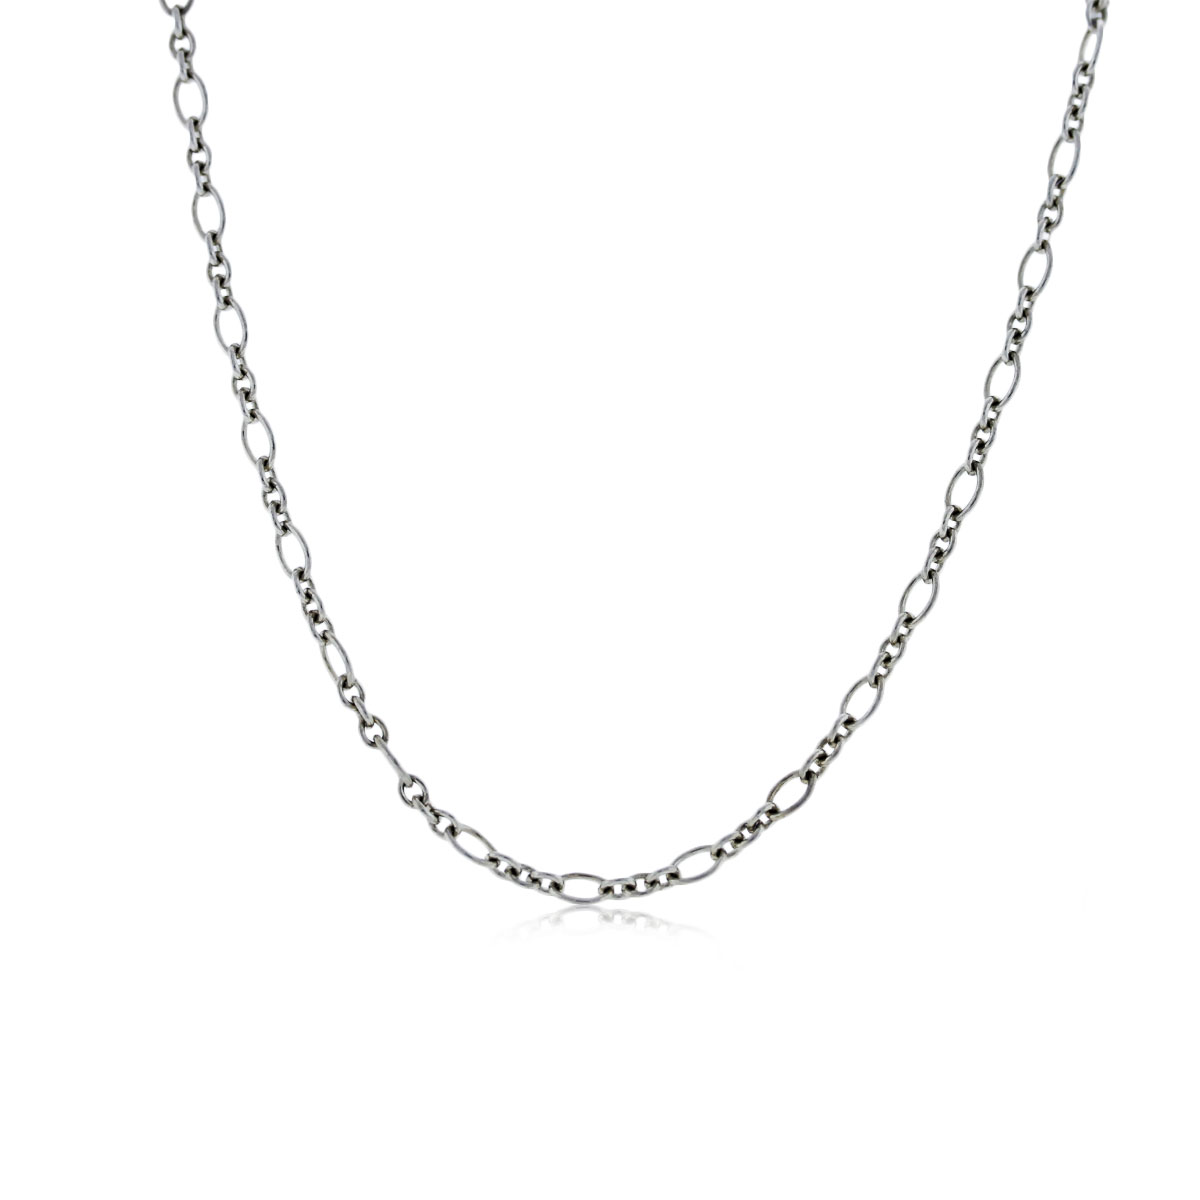 hardy sterling silver link chain necklace boca raton